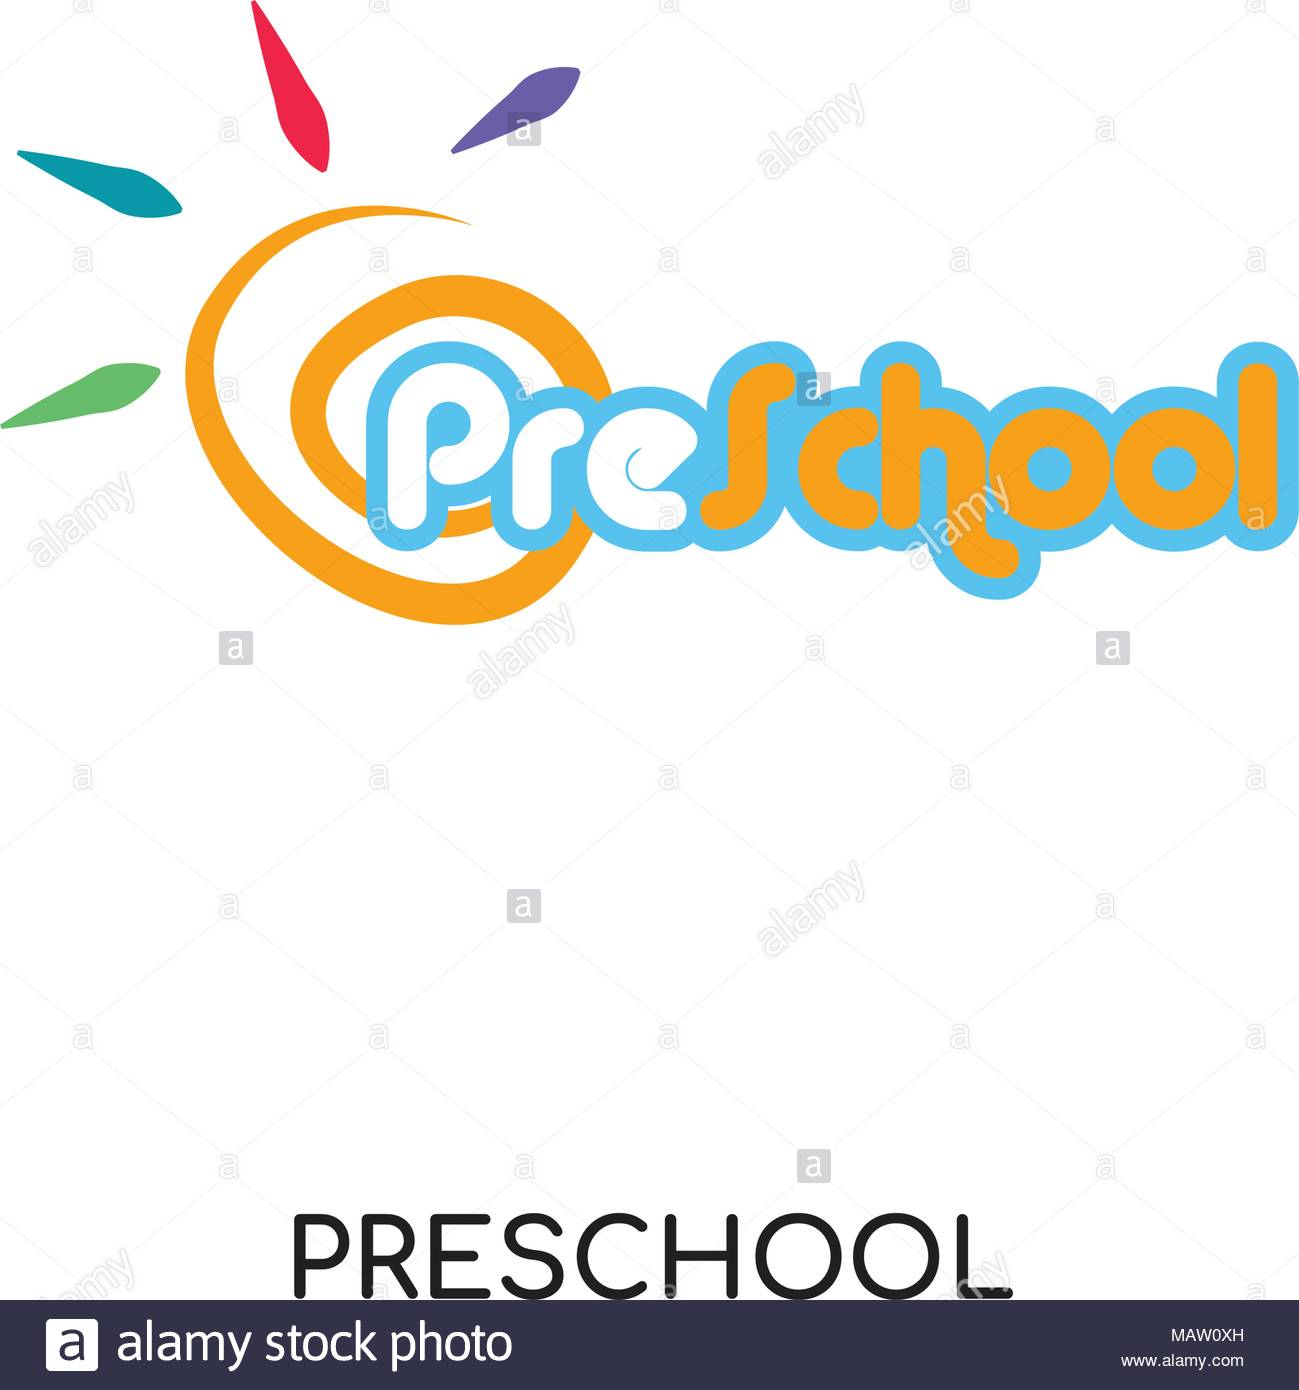 preschool logo image isolated on white background for your web 1299x1390